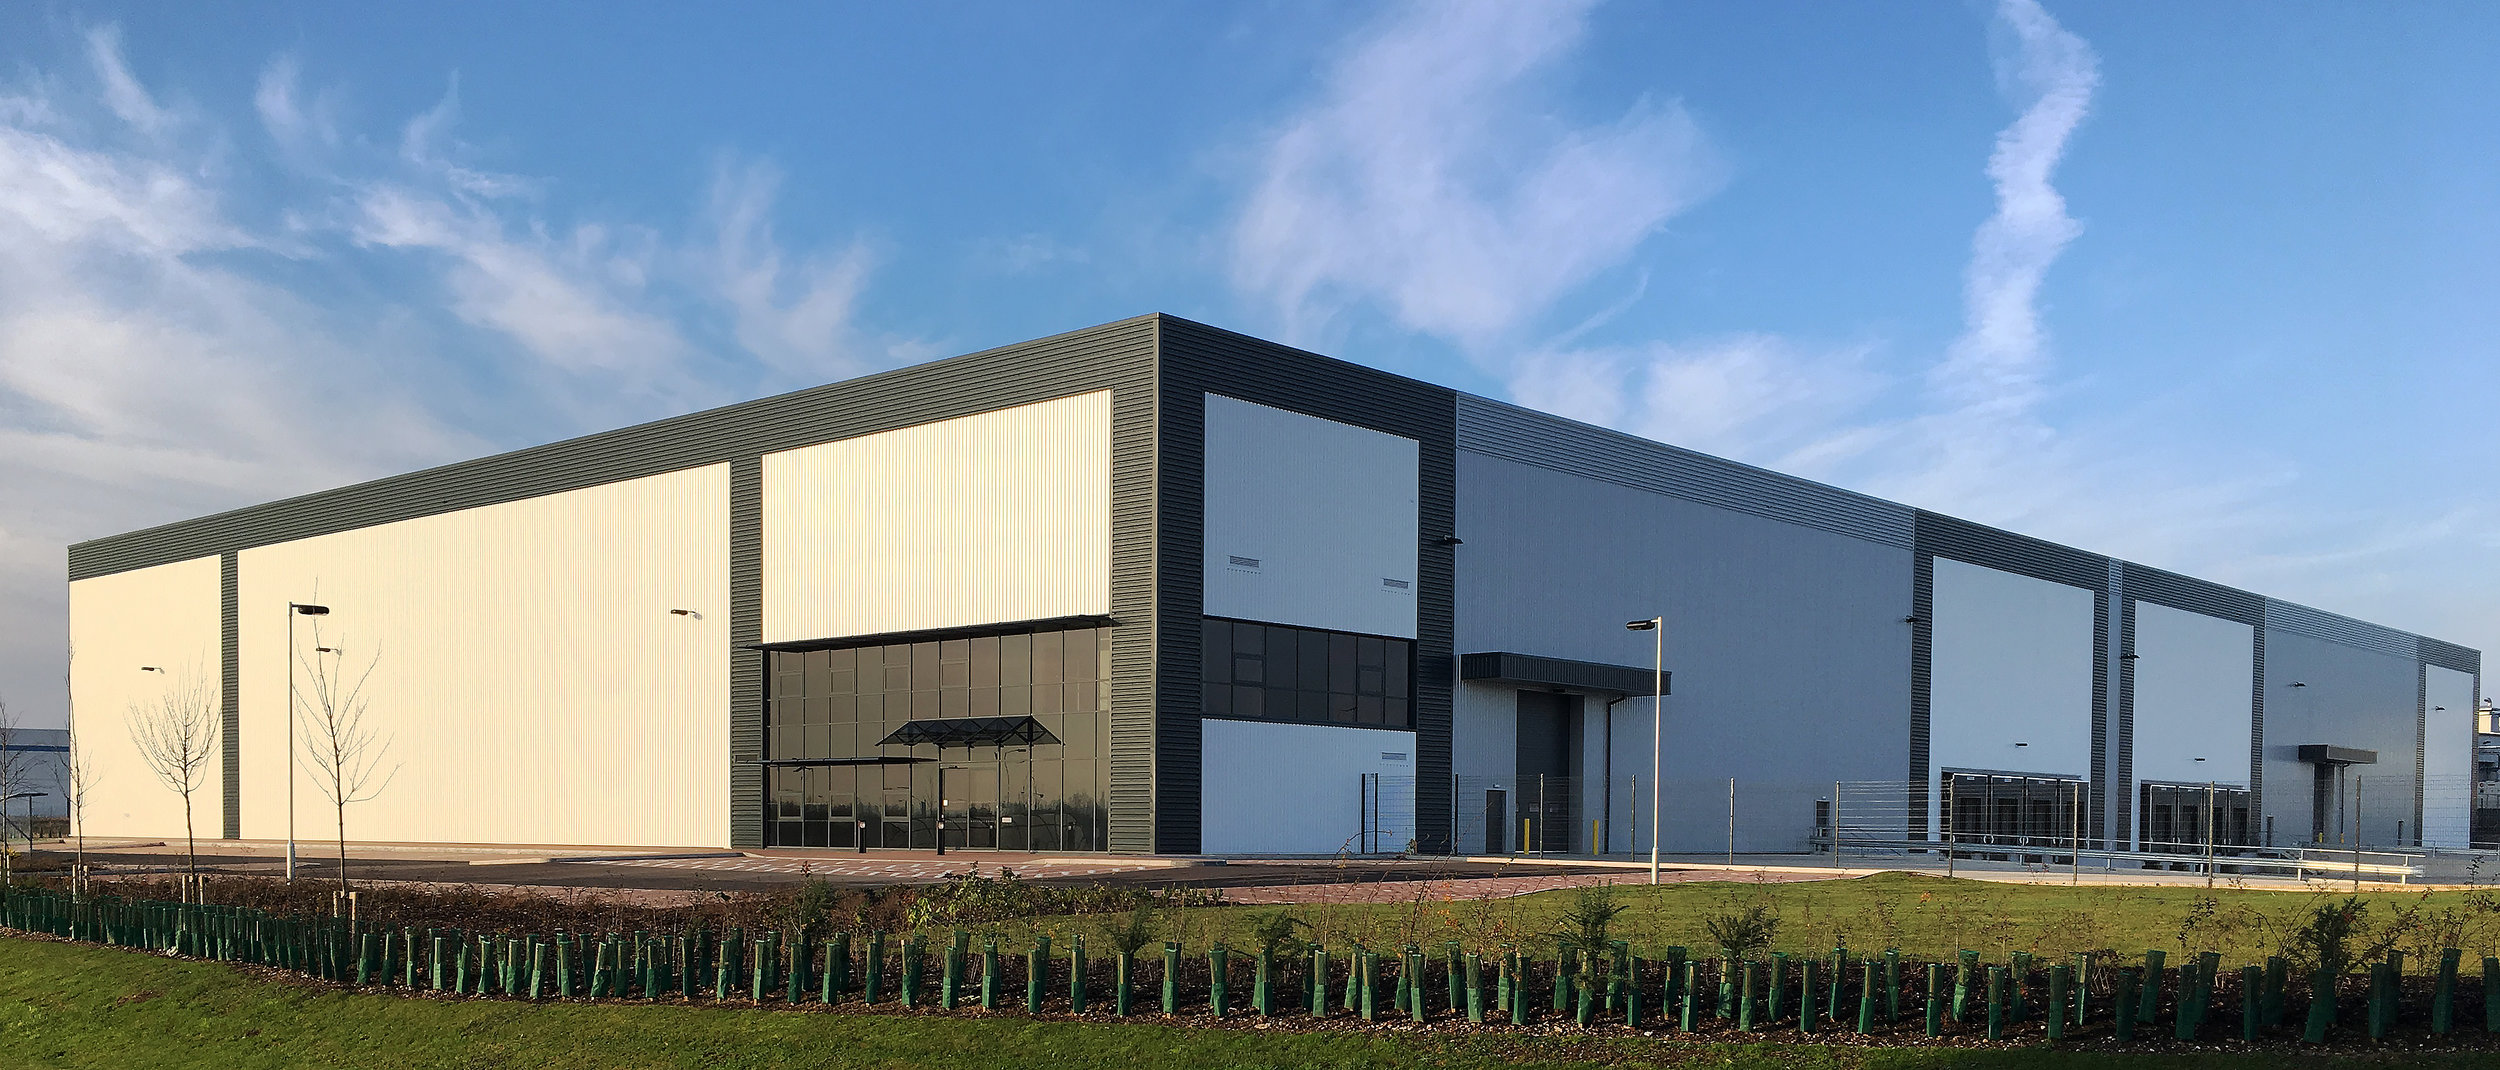 INDUSTRIAL - INVESTMENT - SALE    TOP HAT - DVP118 - DERBYSHIRE   118,434 sq ft Warehouse let on a new 20 year lease   Client:  CWC Group   Purchaser:  Confidential   Price:  Confidential